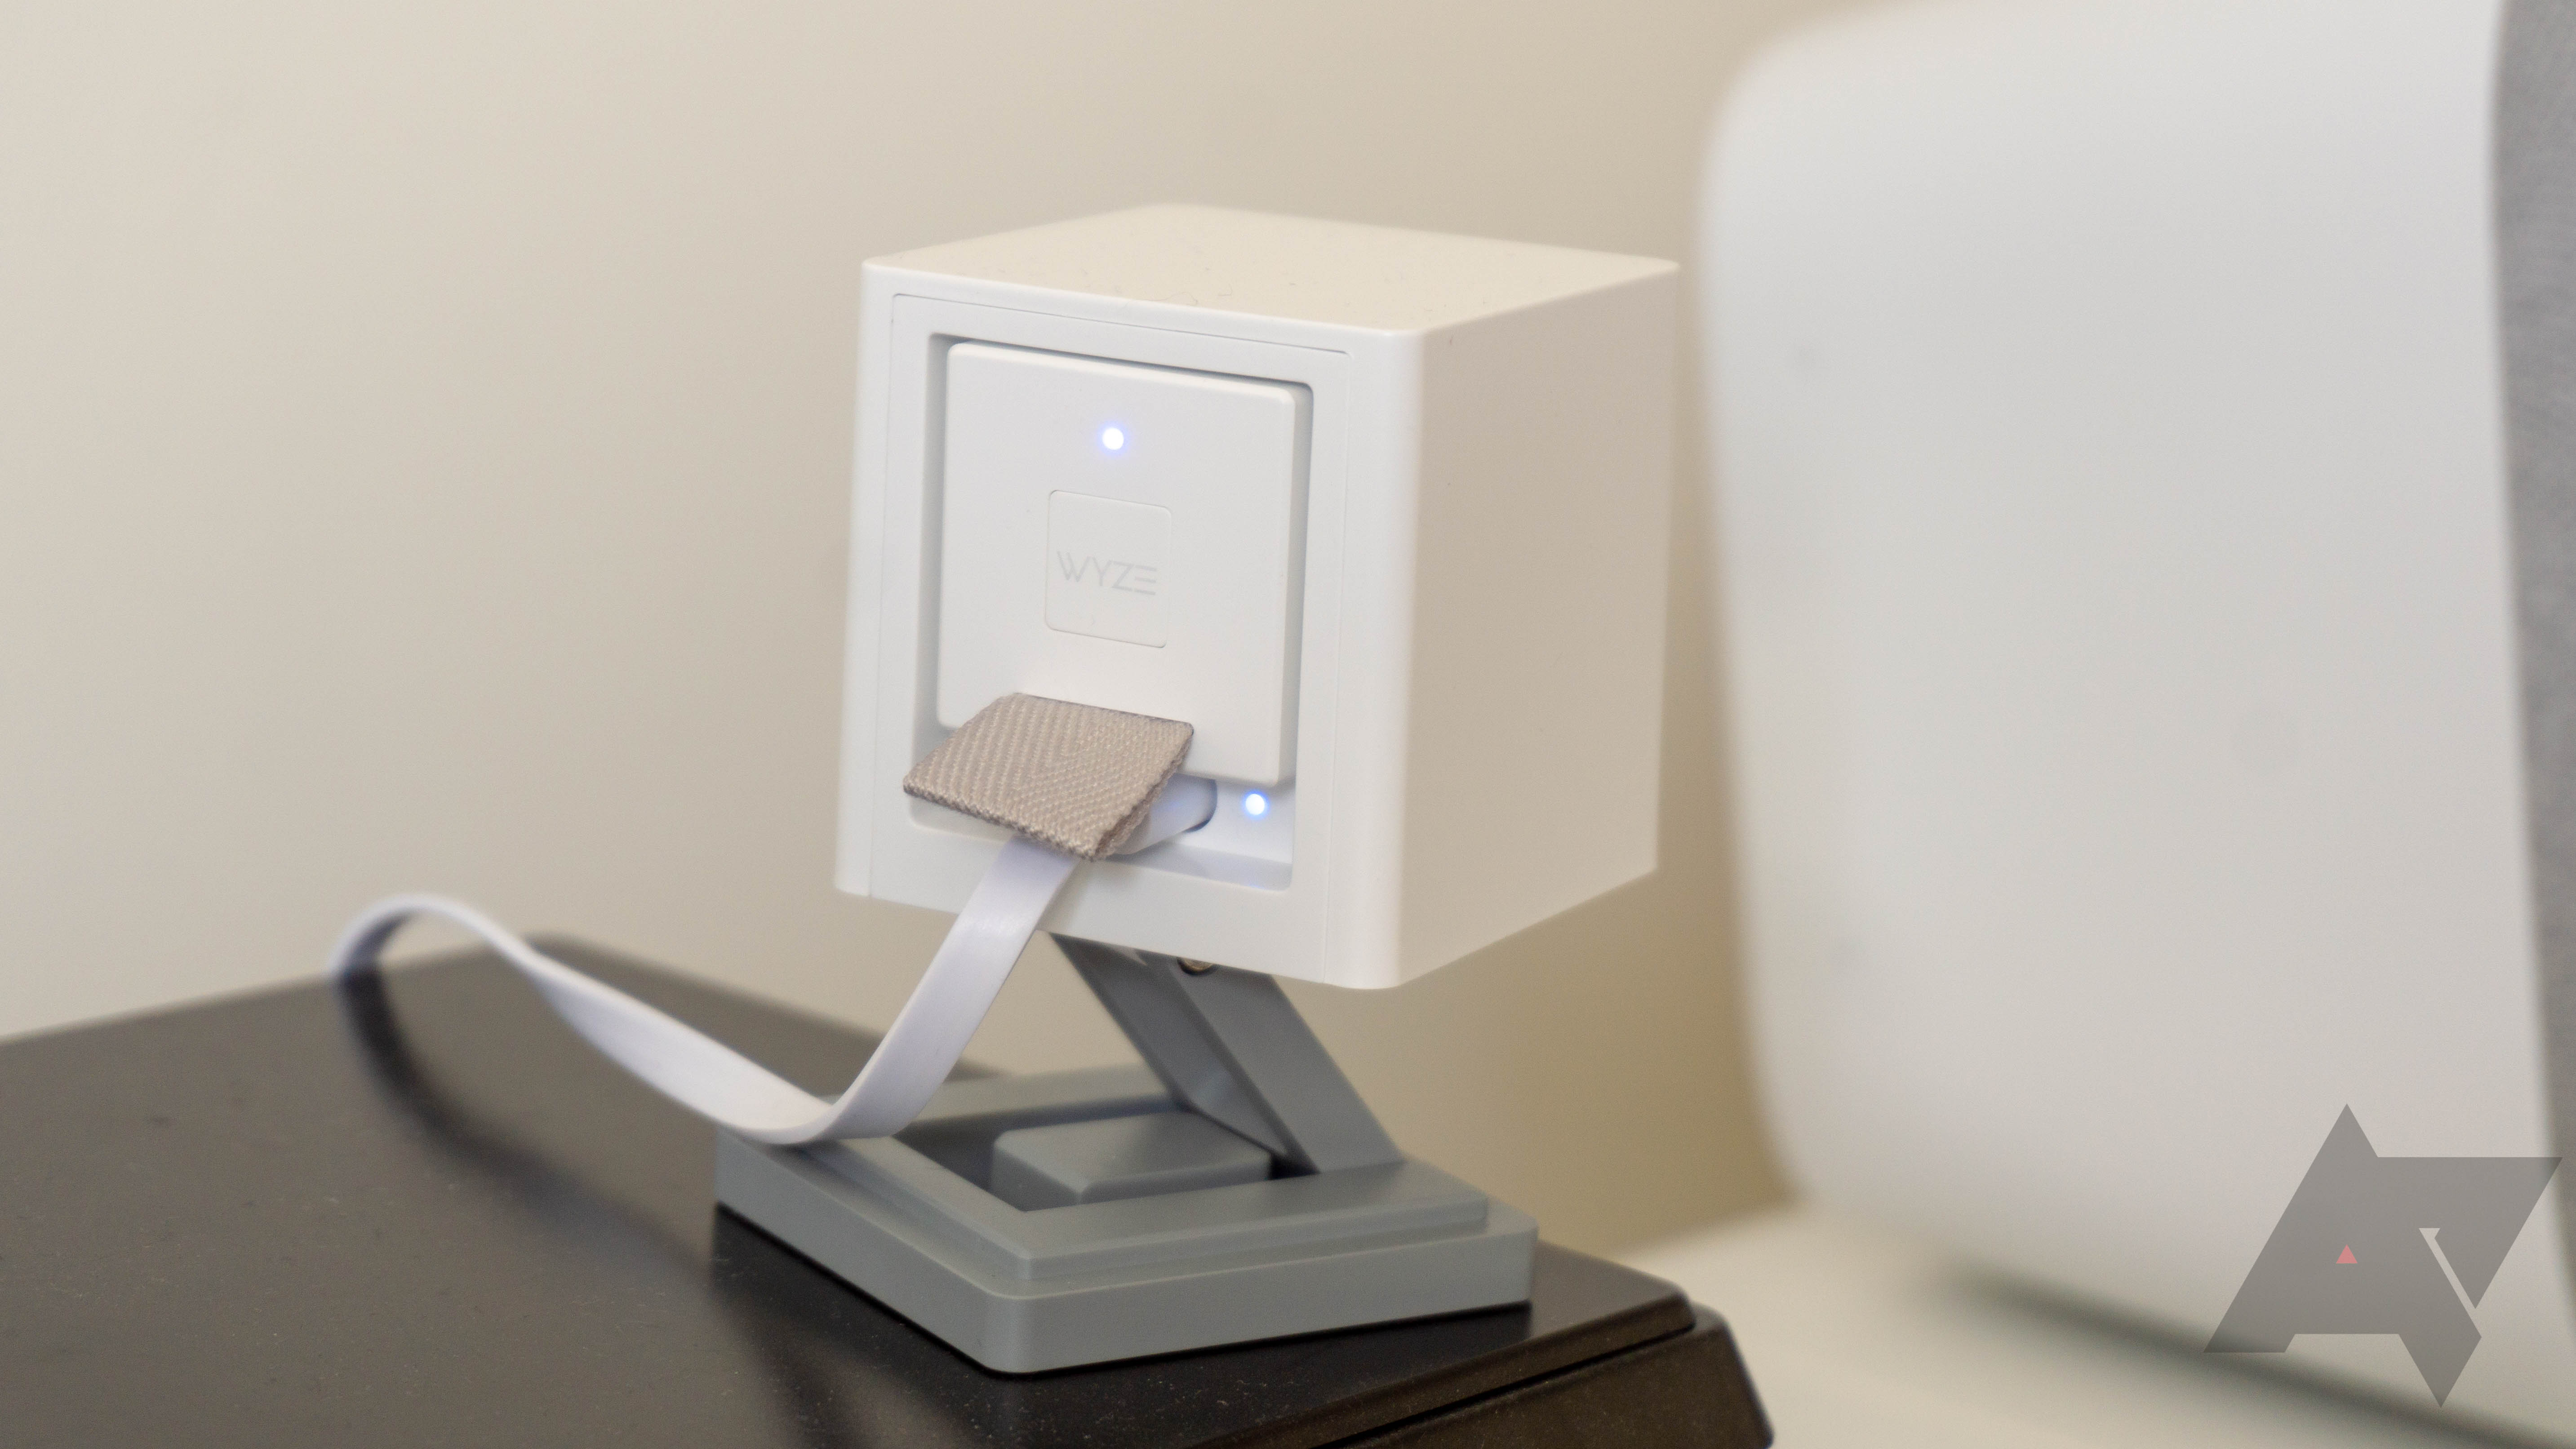 Wyze Sense review: An incredible home security value